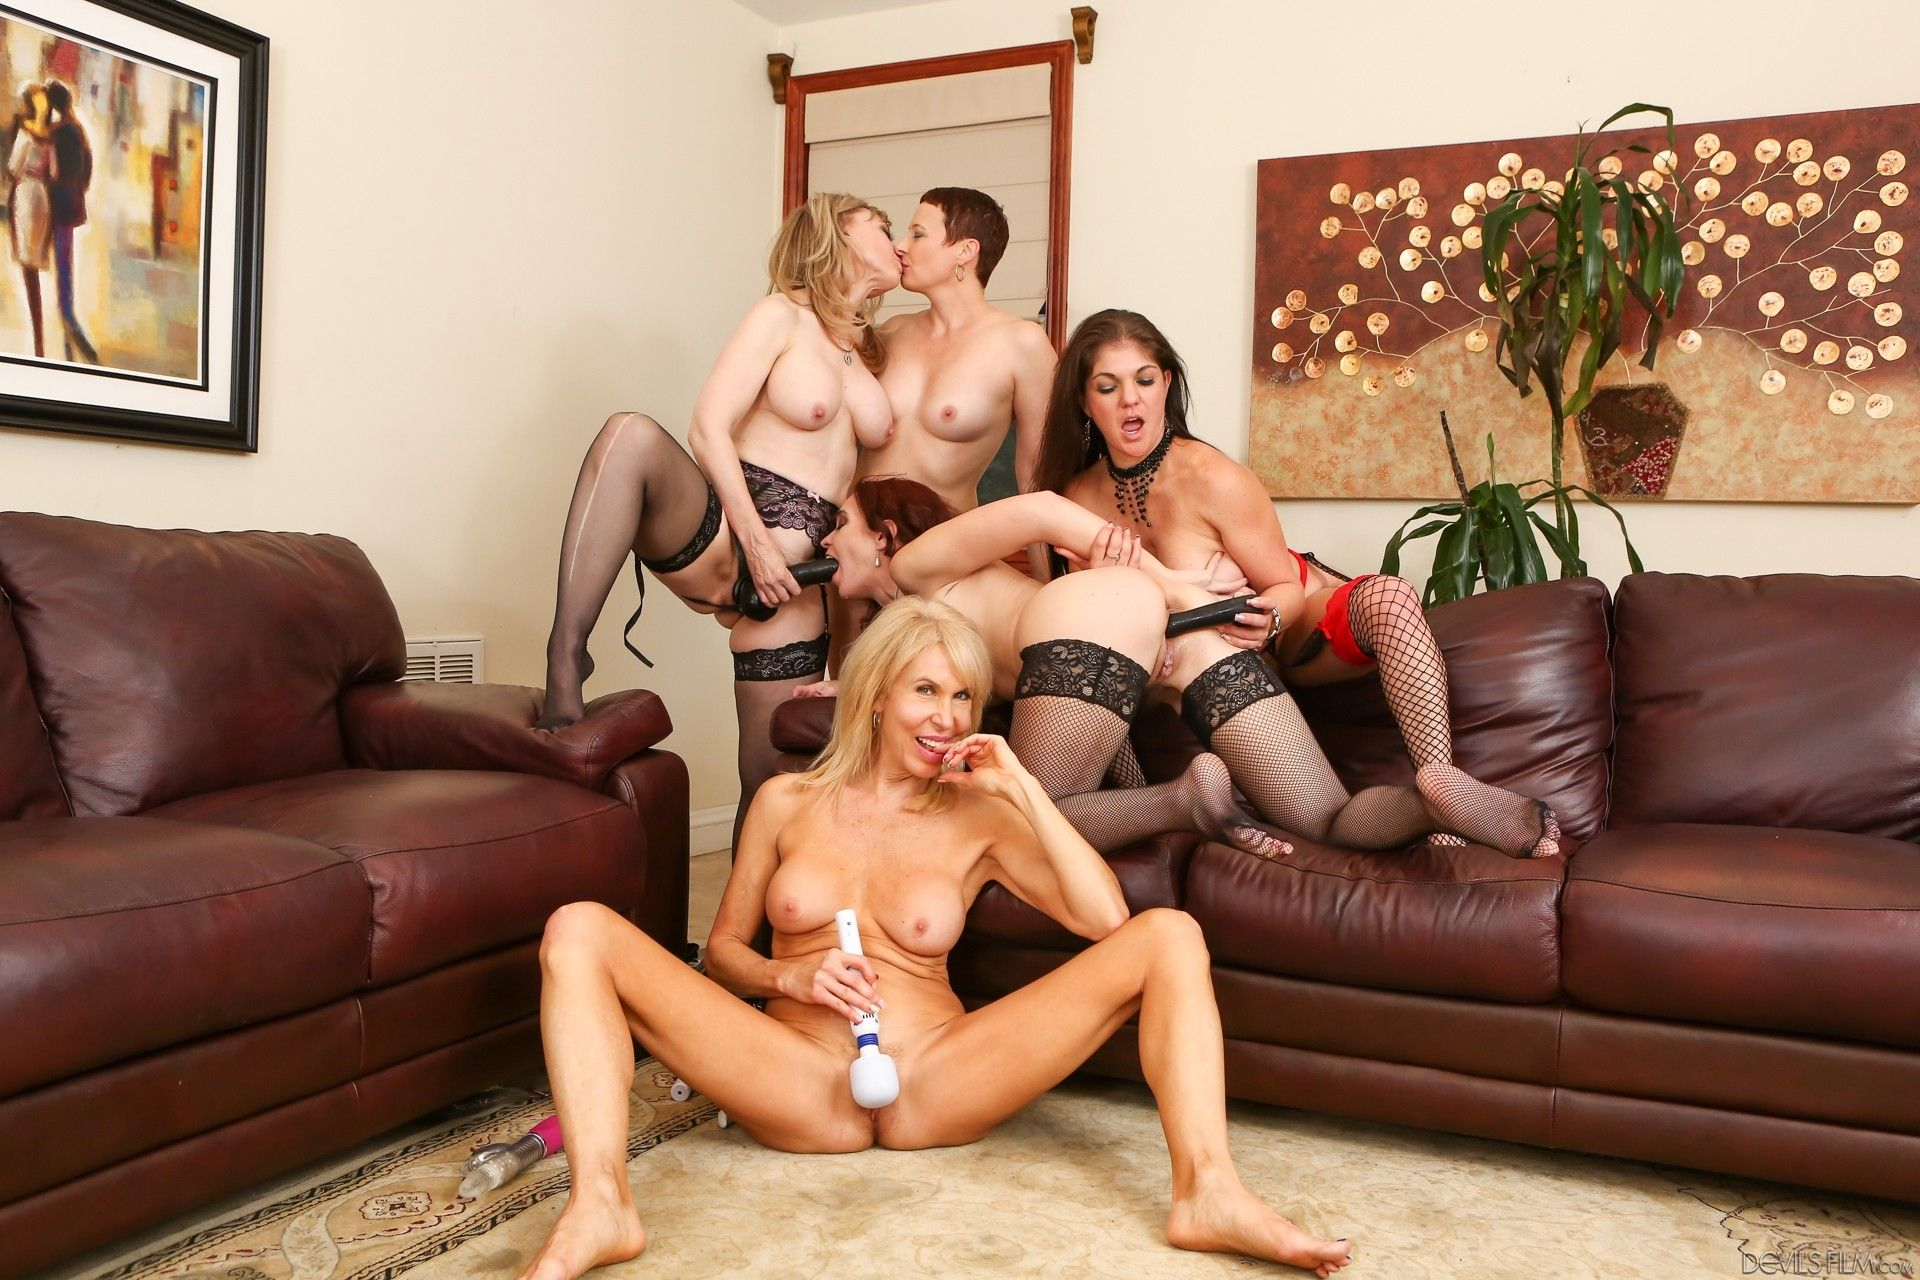 Group of milfs lesbian orgy something